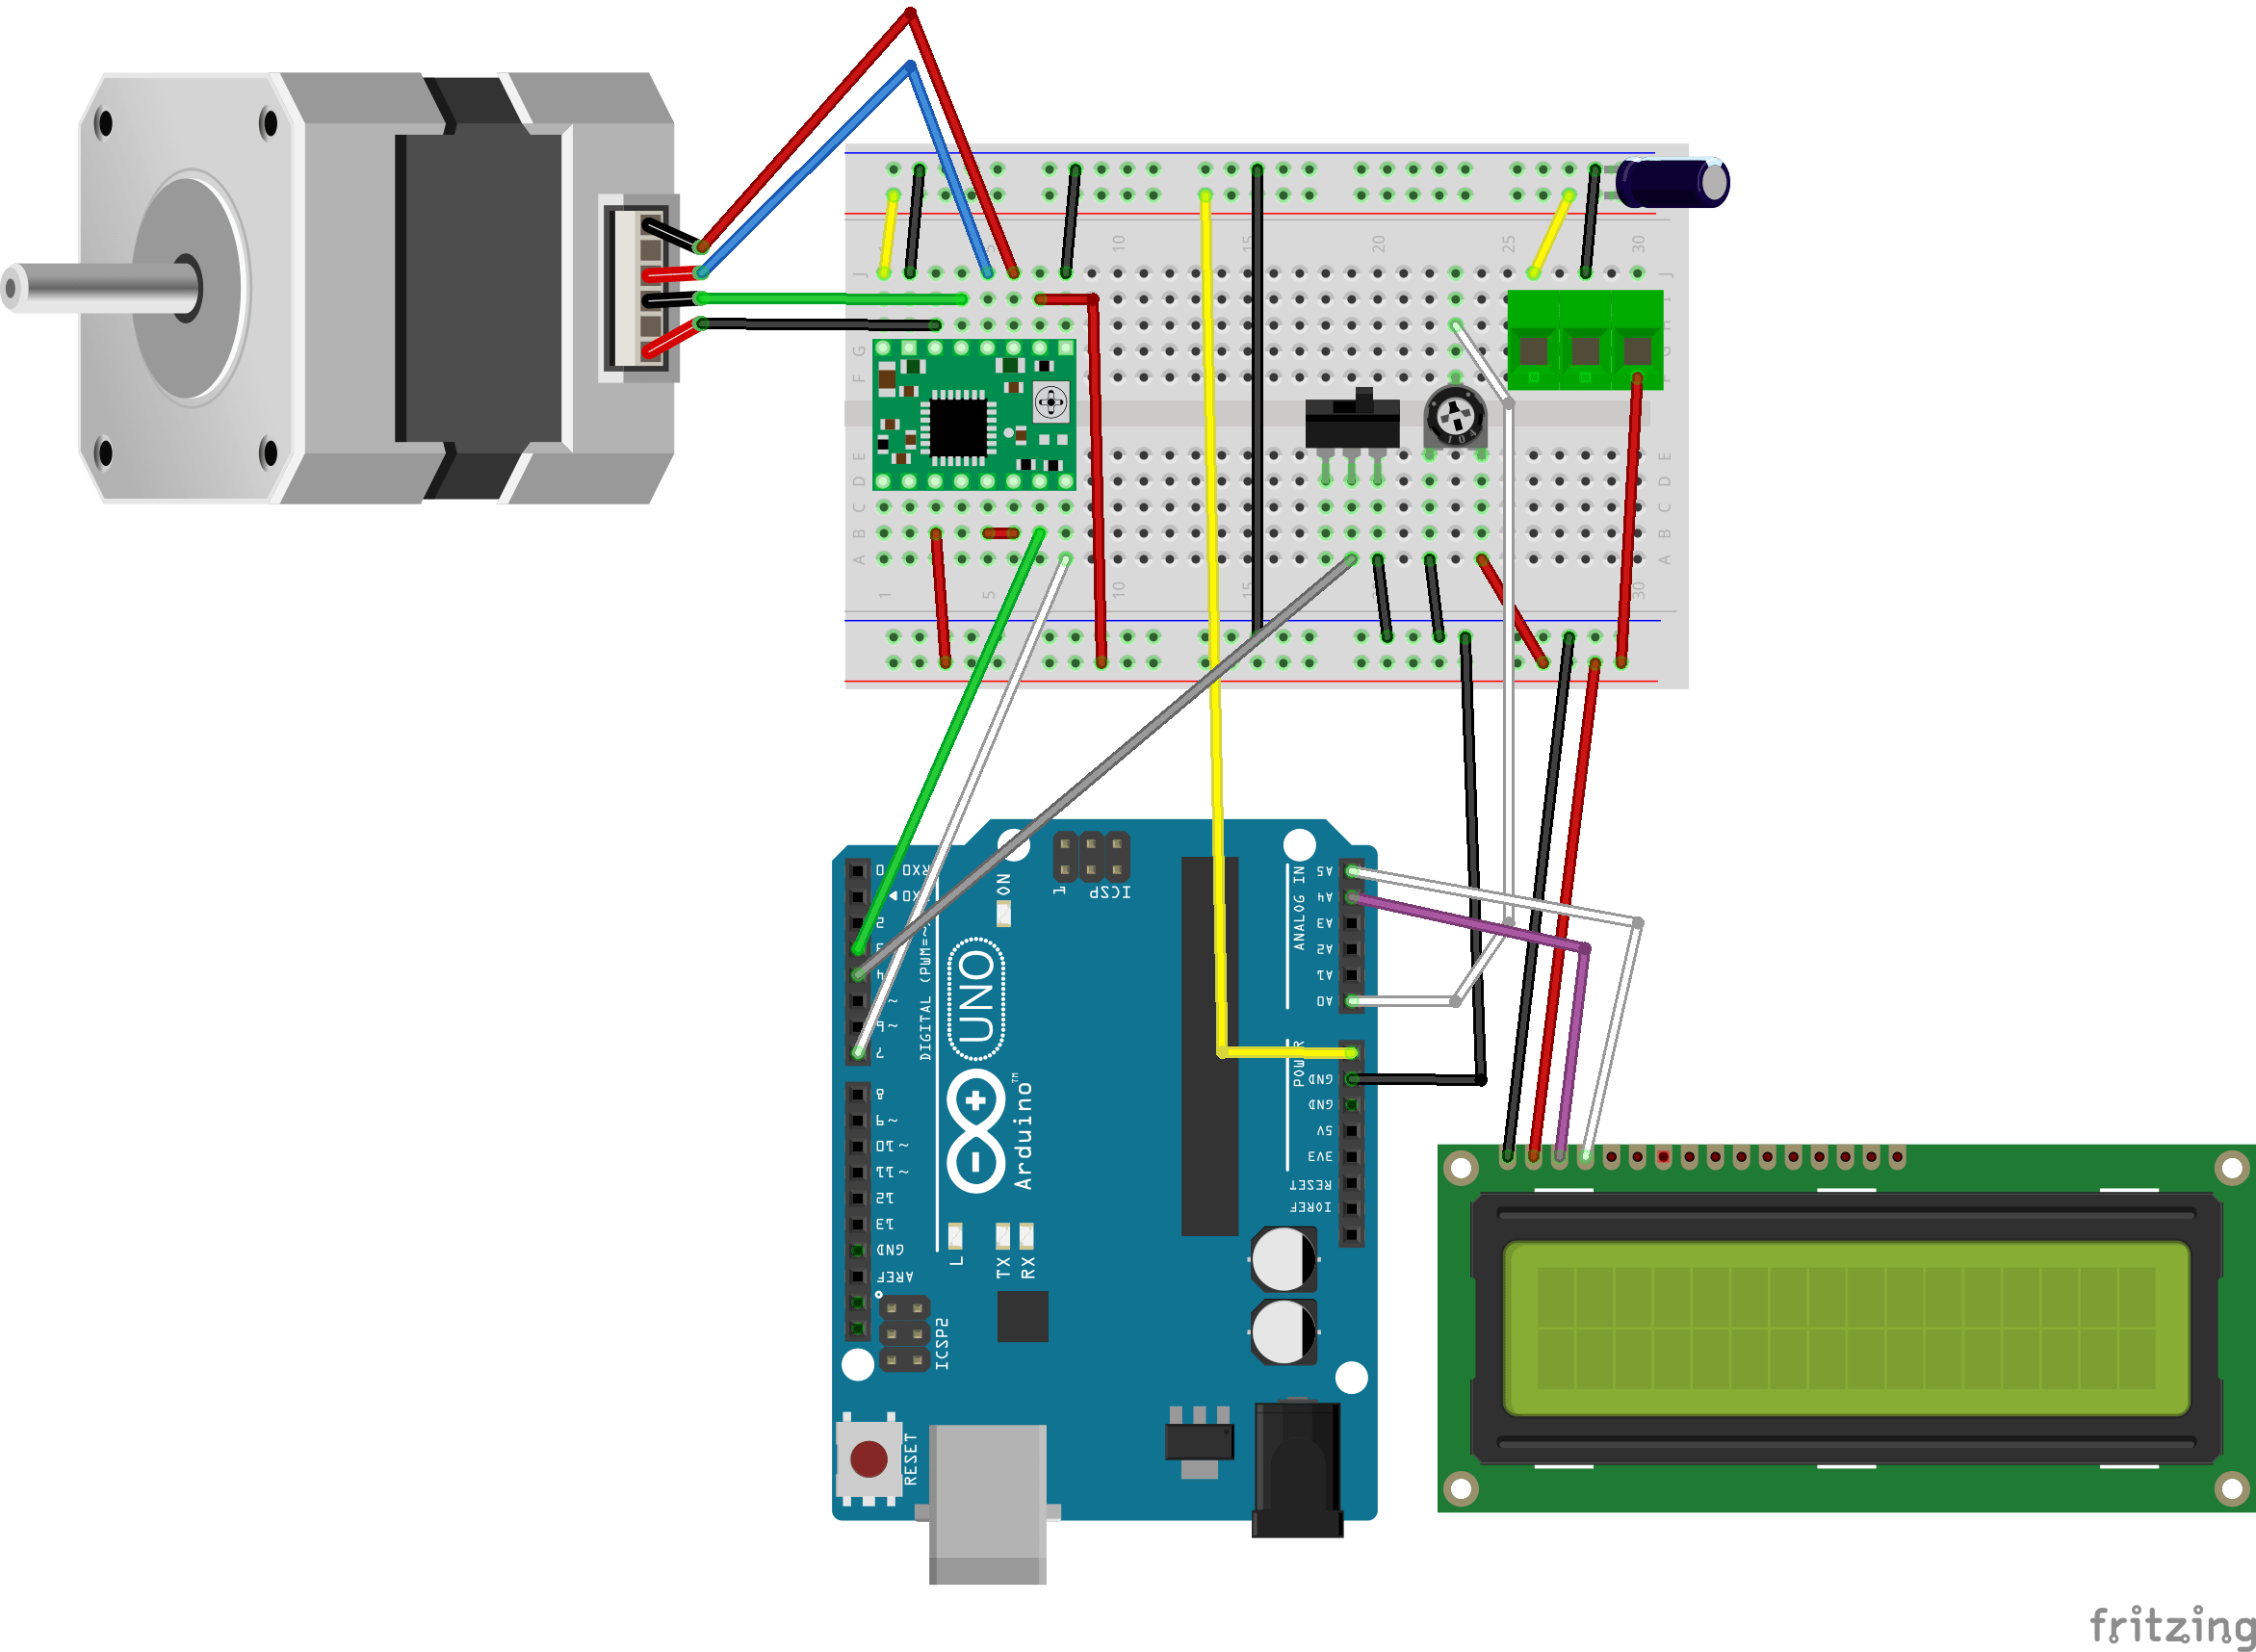 hight resolution of  5v is connected to stepper motor driver in left side row 3 more information on the stepper motor connections can be found in